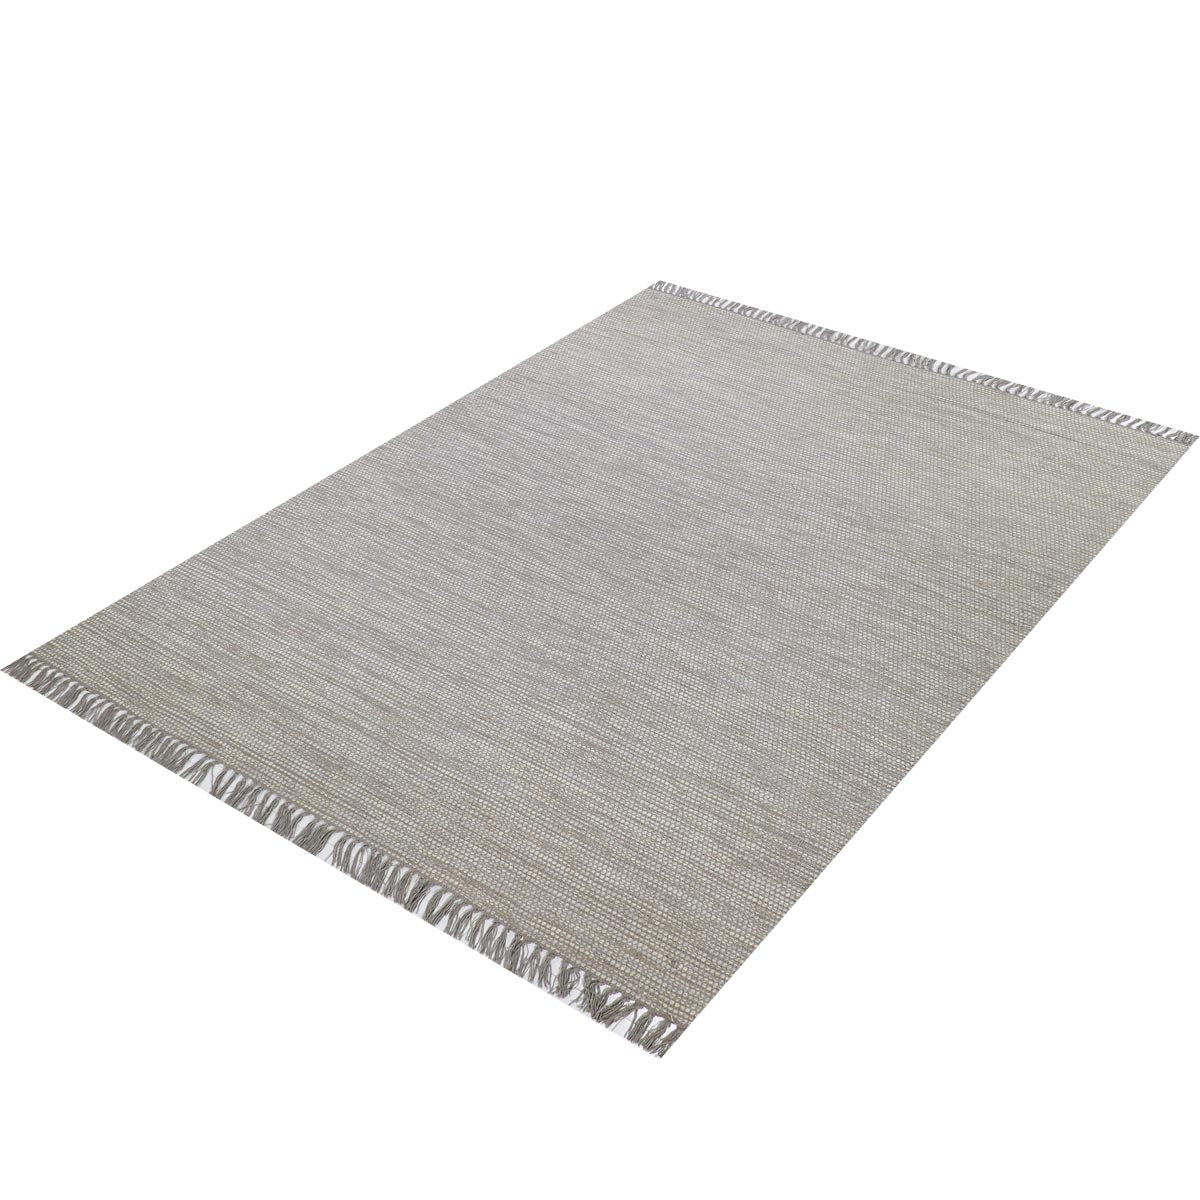 Chicago Rug 01 Dark Beige 3